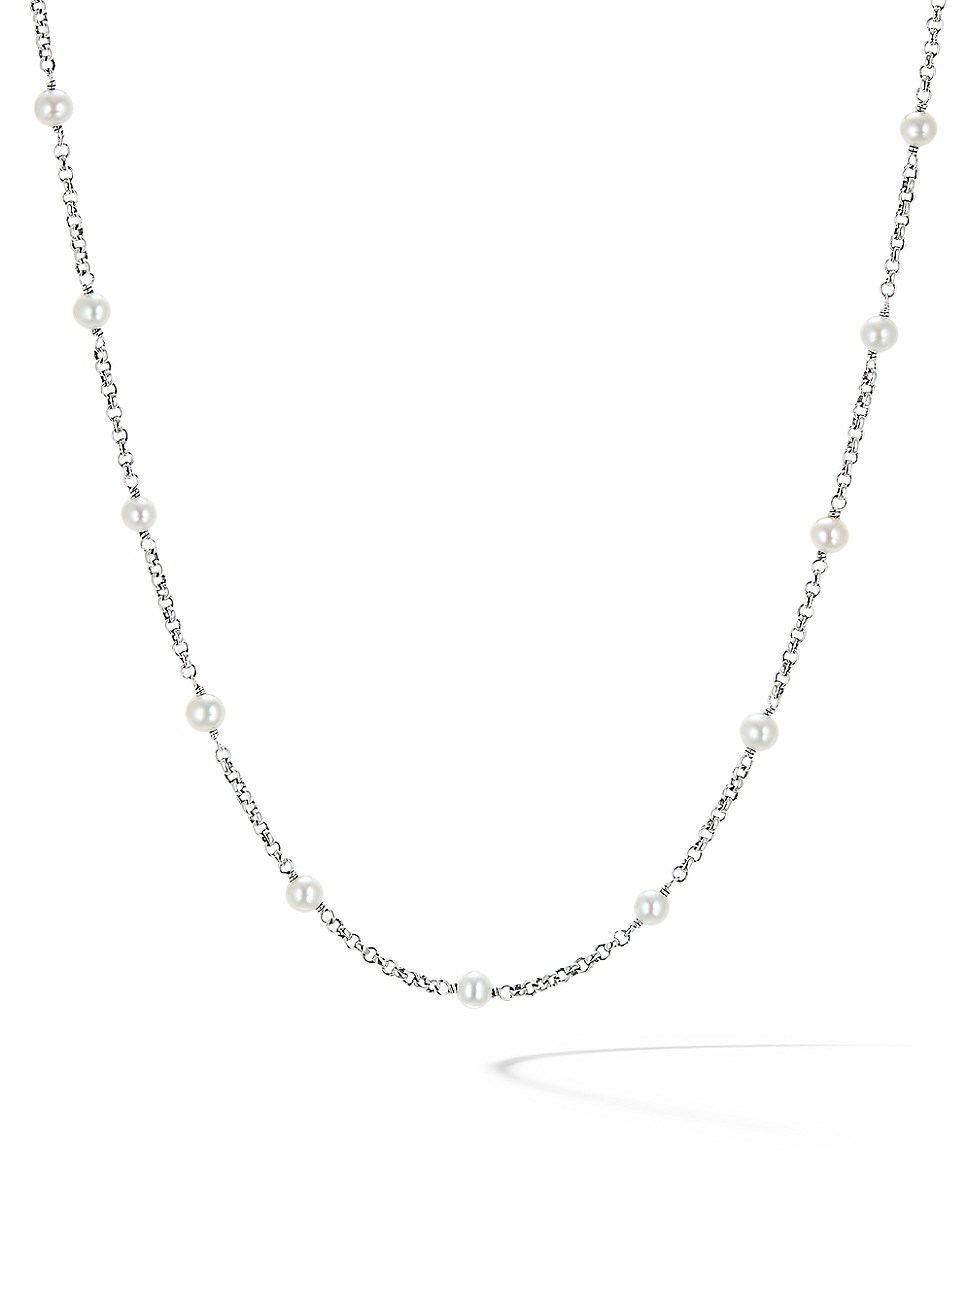 David Yurman WOMEN'S CABLE COLLECTIBLES BEAD & CHAIN NECKLACE WITH PEARLS